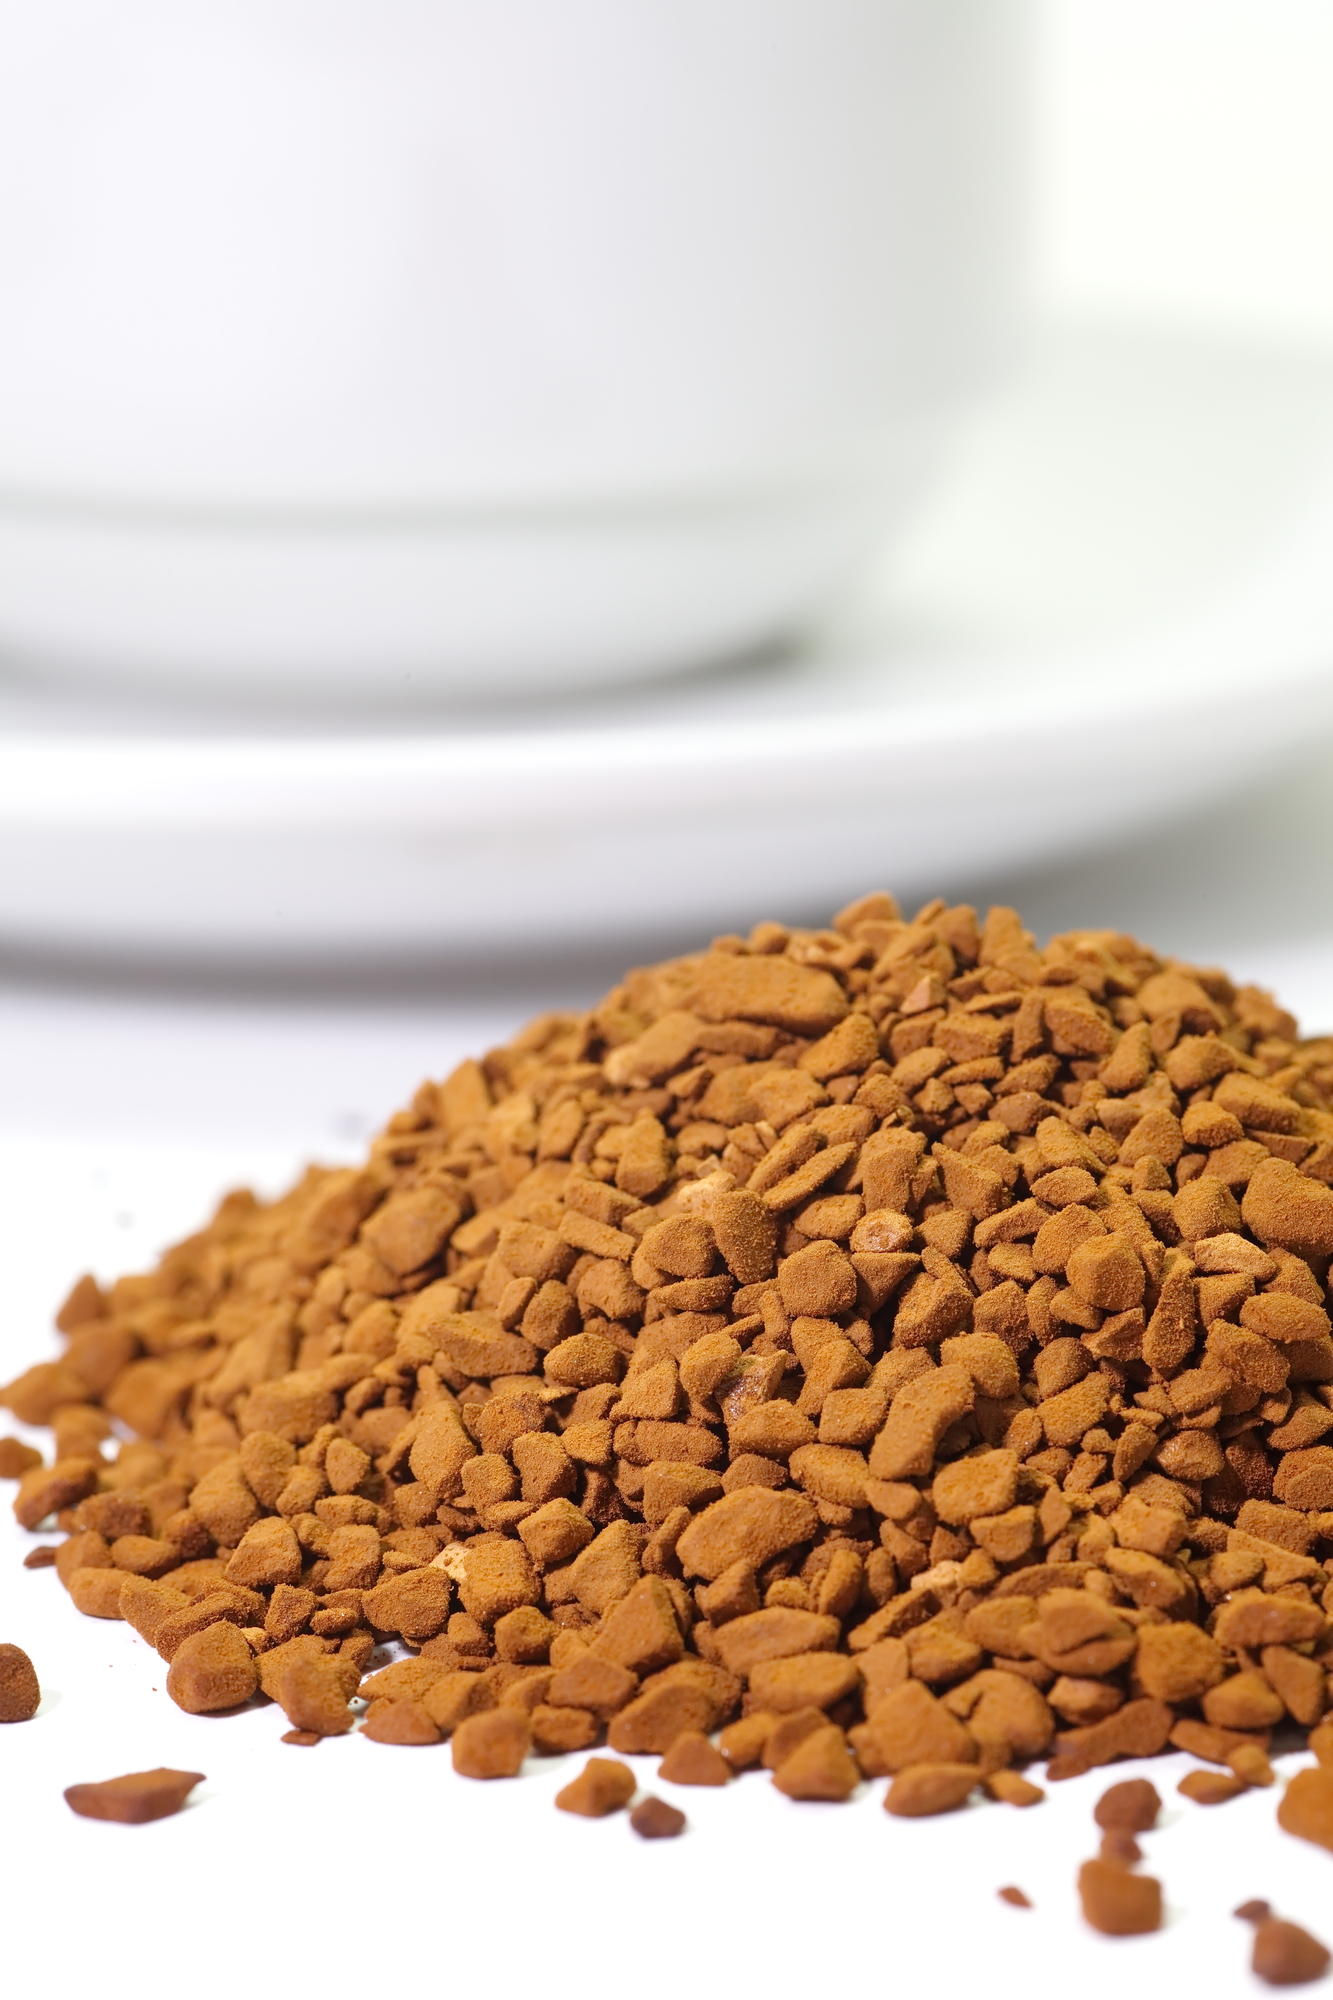 Granular Food Powder, Powder Filling Services, Colorado Contract Packaging, Colorado Contract Manufacturing, Sample Solutions LLC.,